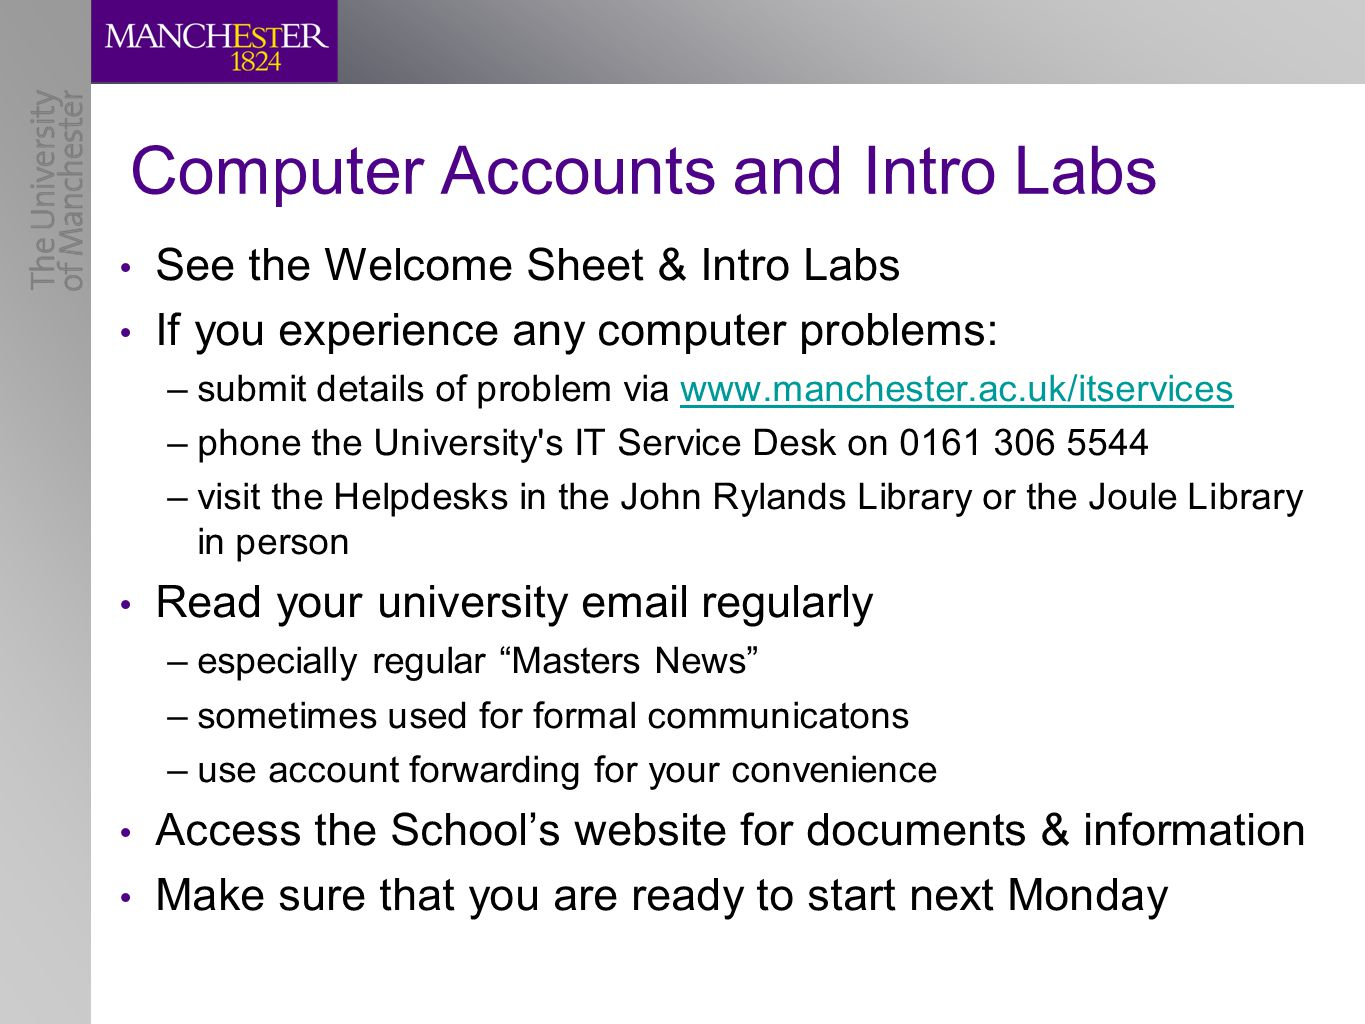 Computer Accounts and Intro Labs See the Welcome Sheet & Intro Labs If you experience any computer problems: –submit details of problem via www.manchester.ac.uk/itserviceswww.manchester.ac.uk/itservices –phone the University s IT Service Desk on 0161 306 5544 –visit the Helpdesks in the John Rylands Library or the Joule Library in person Read your university email regularly –especially regular Masters News –sometimes used for formal communicatons –use account forwarding for your convenience Access the School's website for documents & information Make sure that you are ready to start next Monday